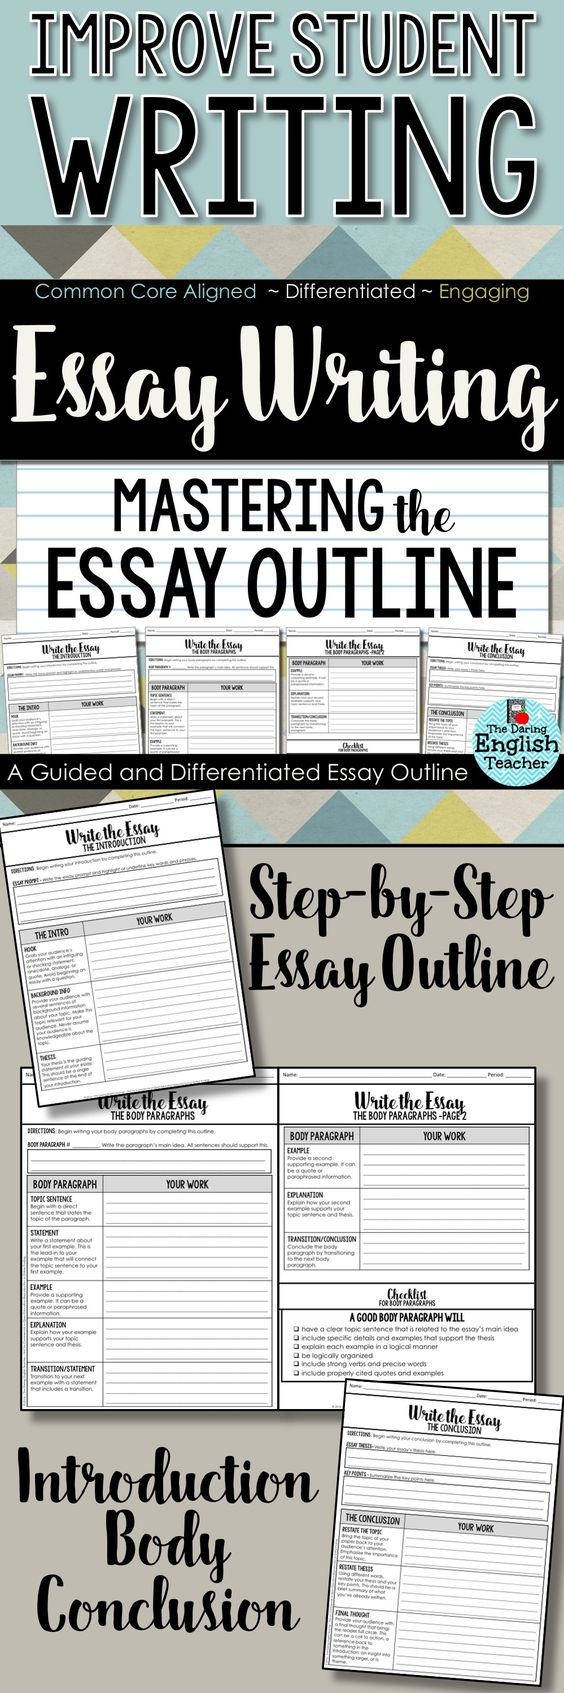 Essay writing on teacher